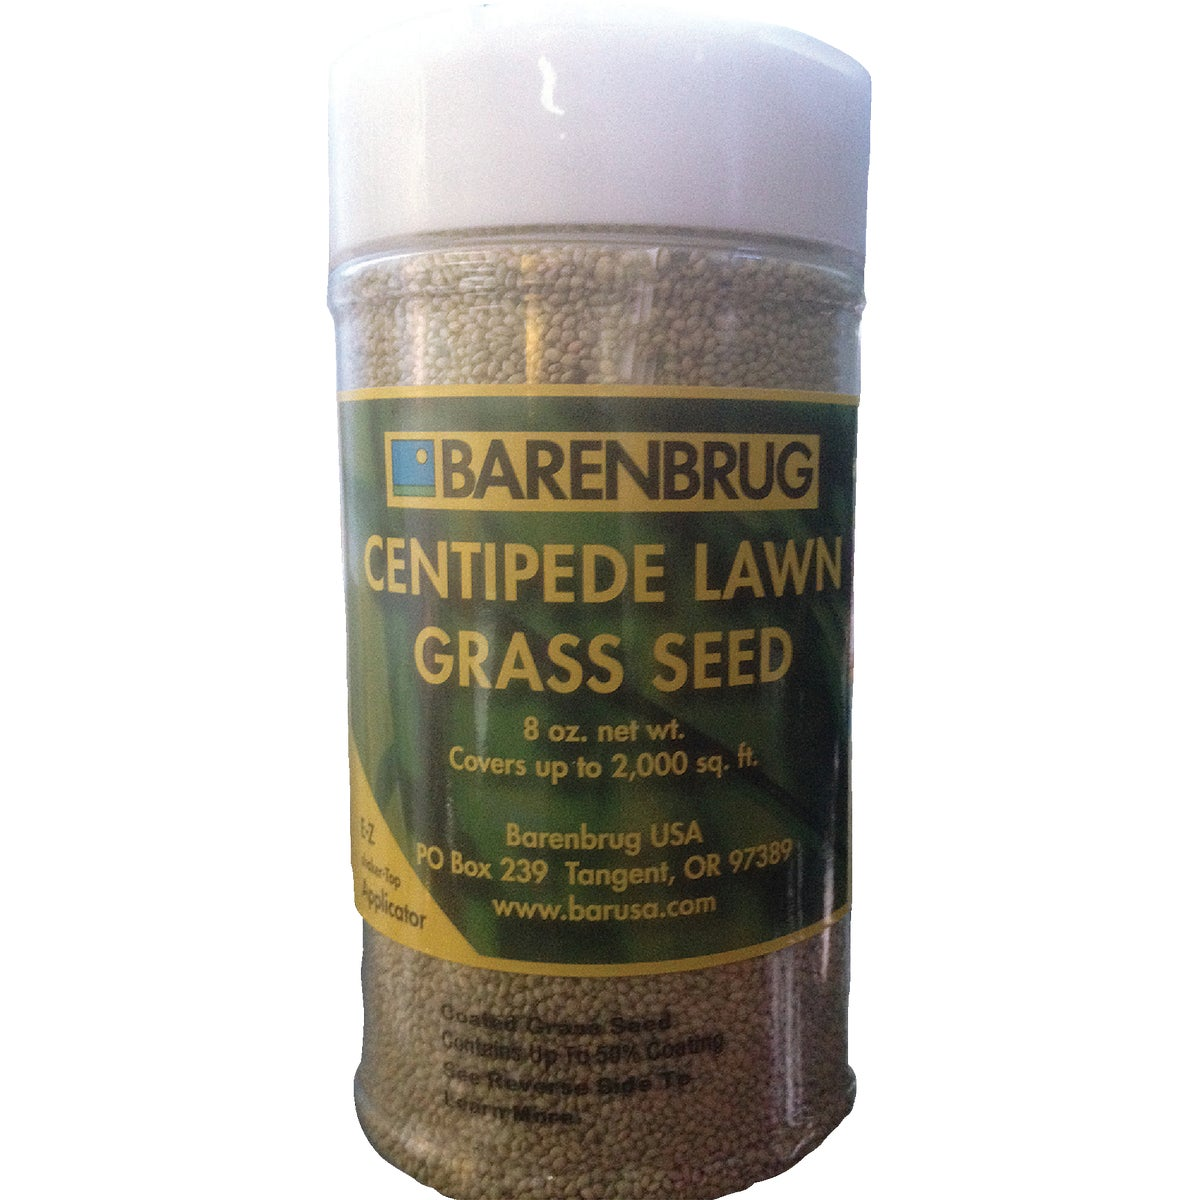 .5LB CENTIPED GRASS SEED